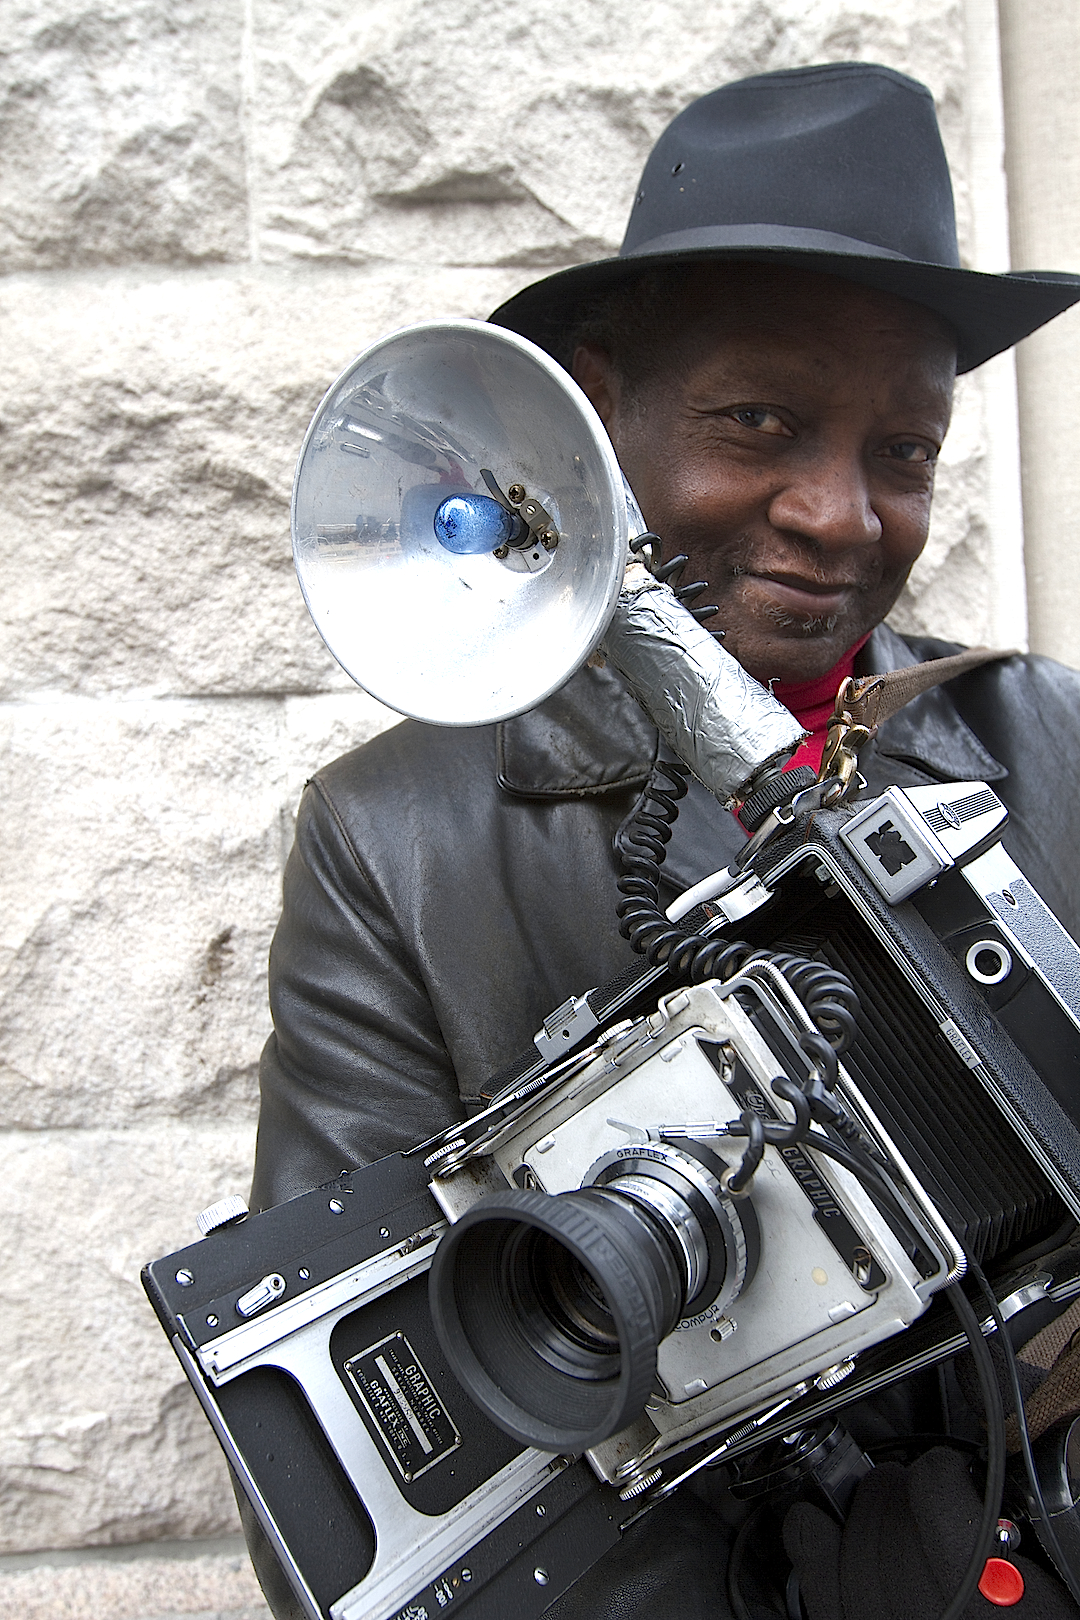 A Portrait of Photographer Louis Mendes